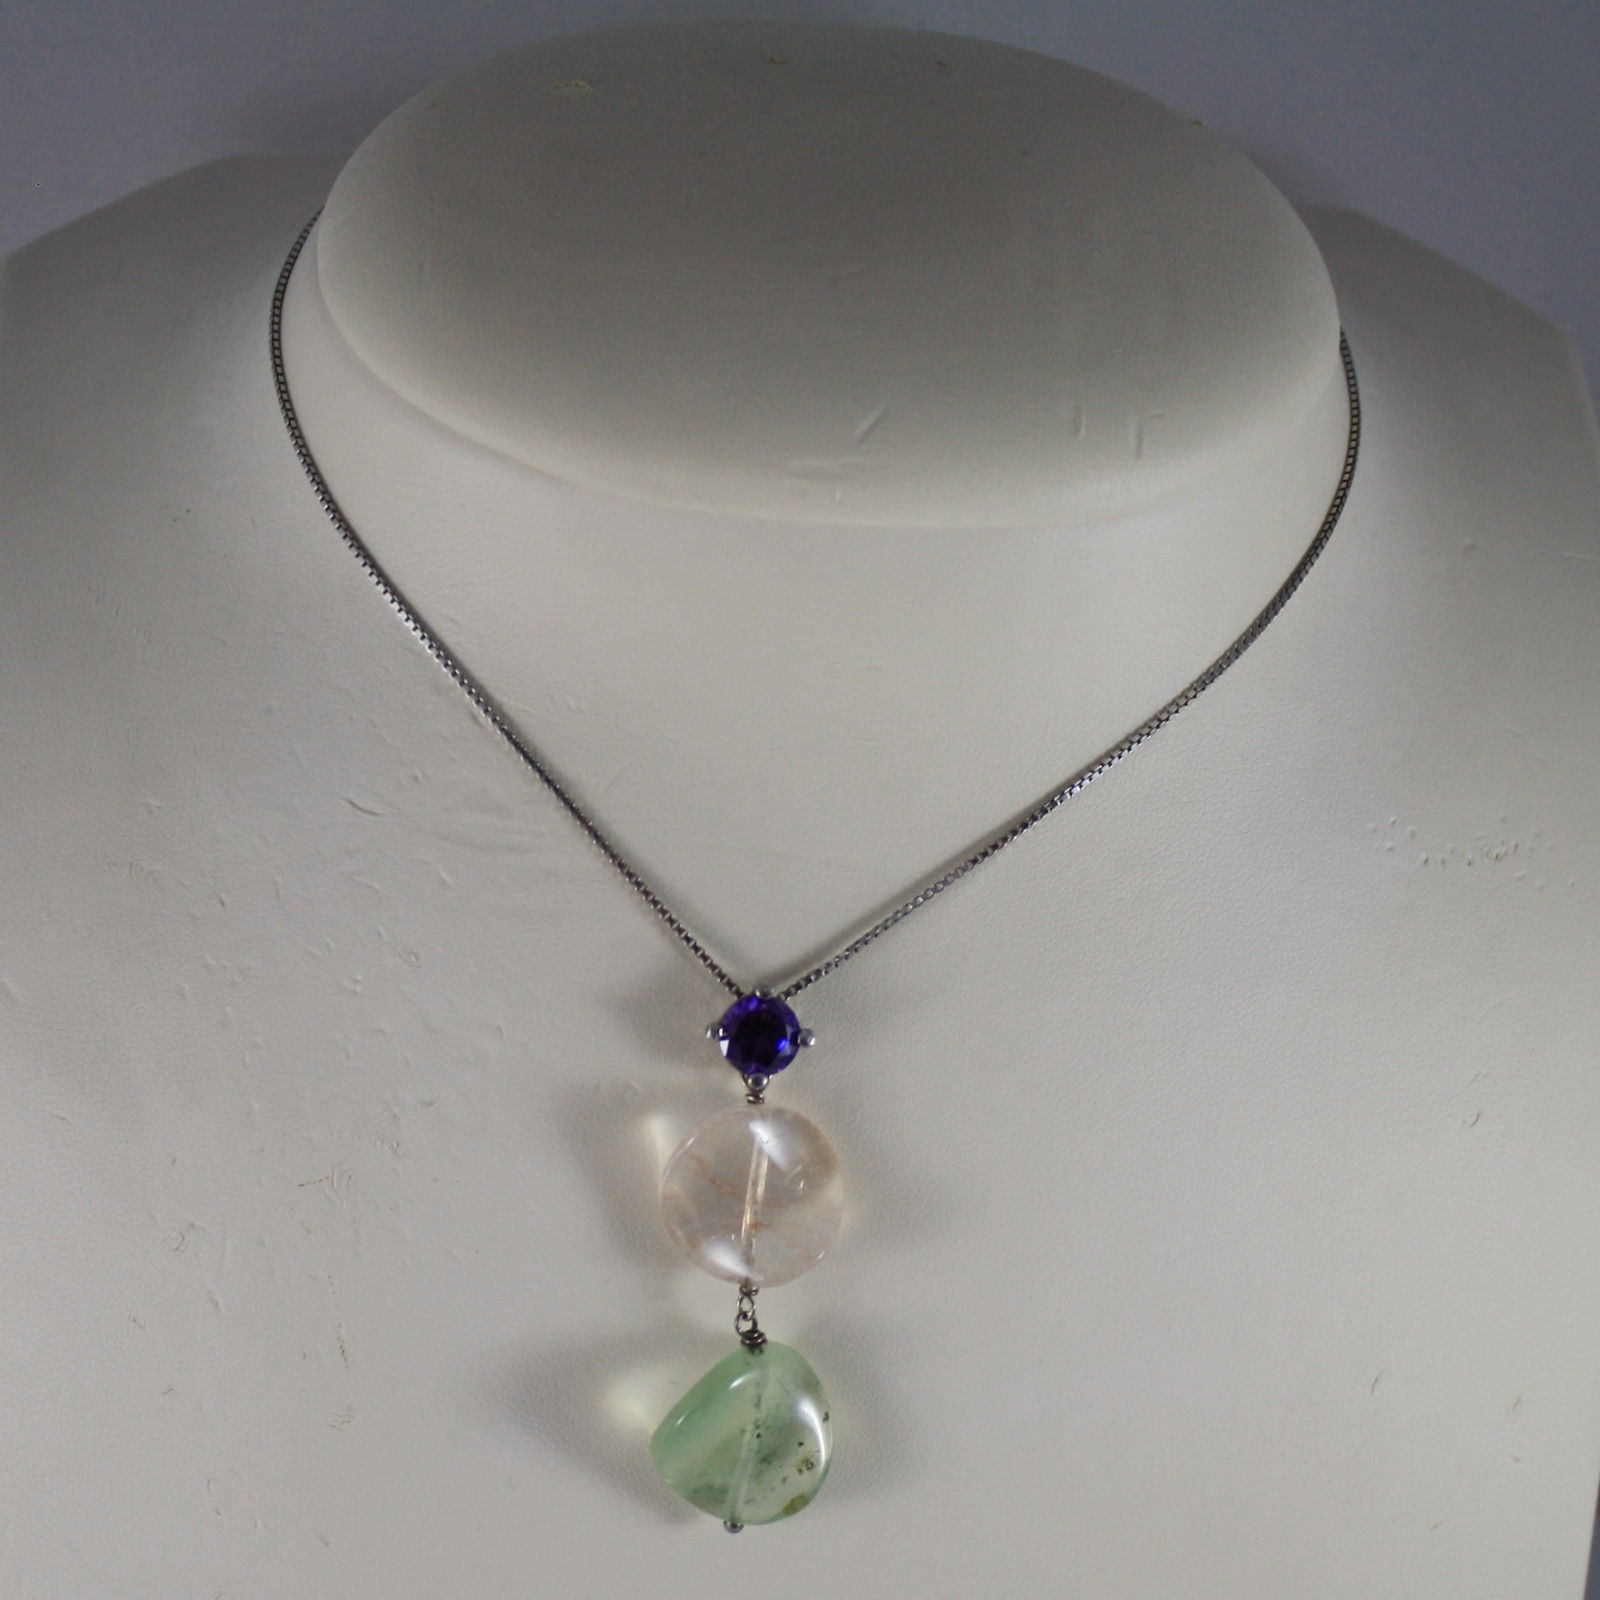 .925 SILVER RHODIUM NECKLACE WITH PURPLE CRYSTALS, YELLOW AND GREEN QUARTZ